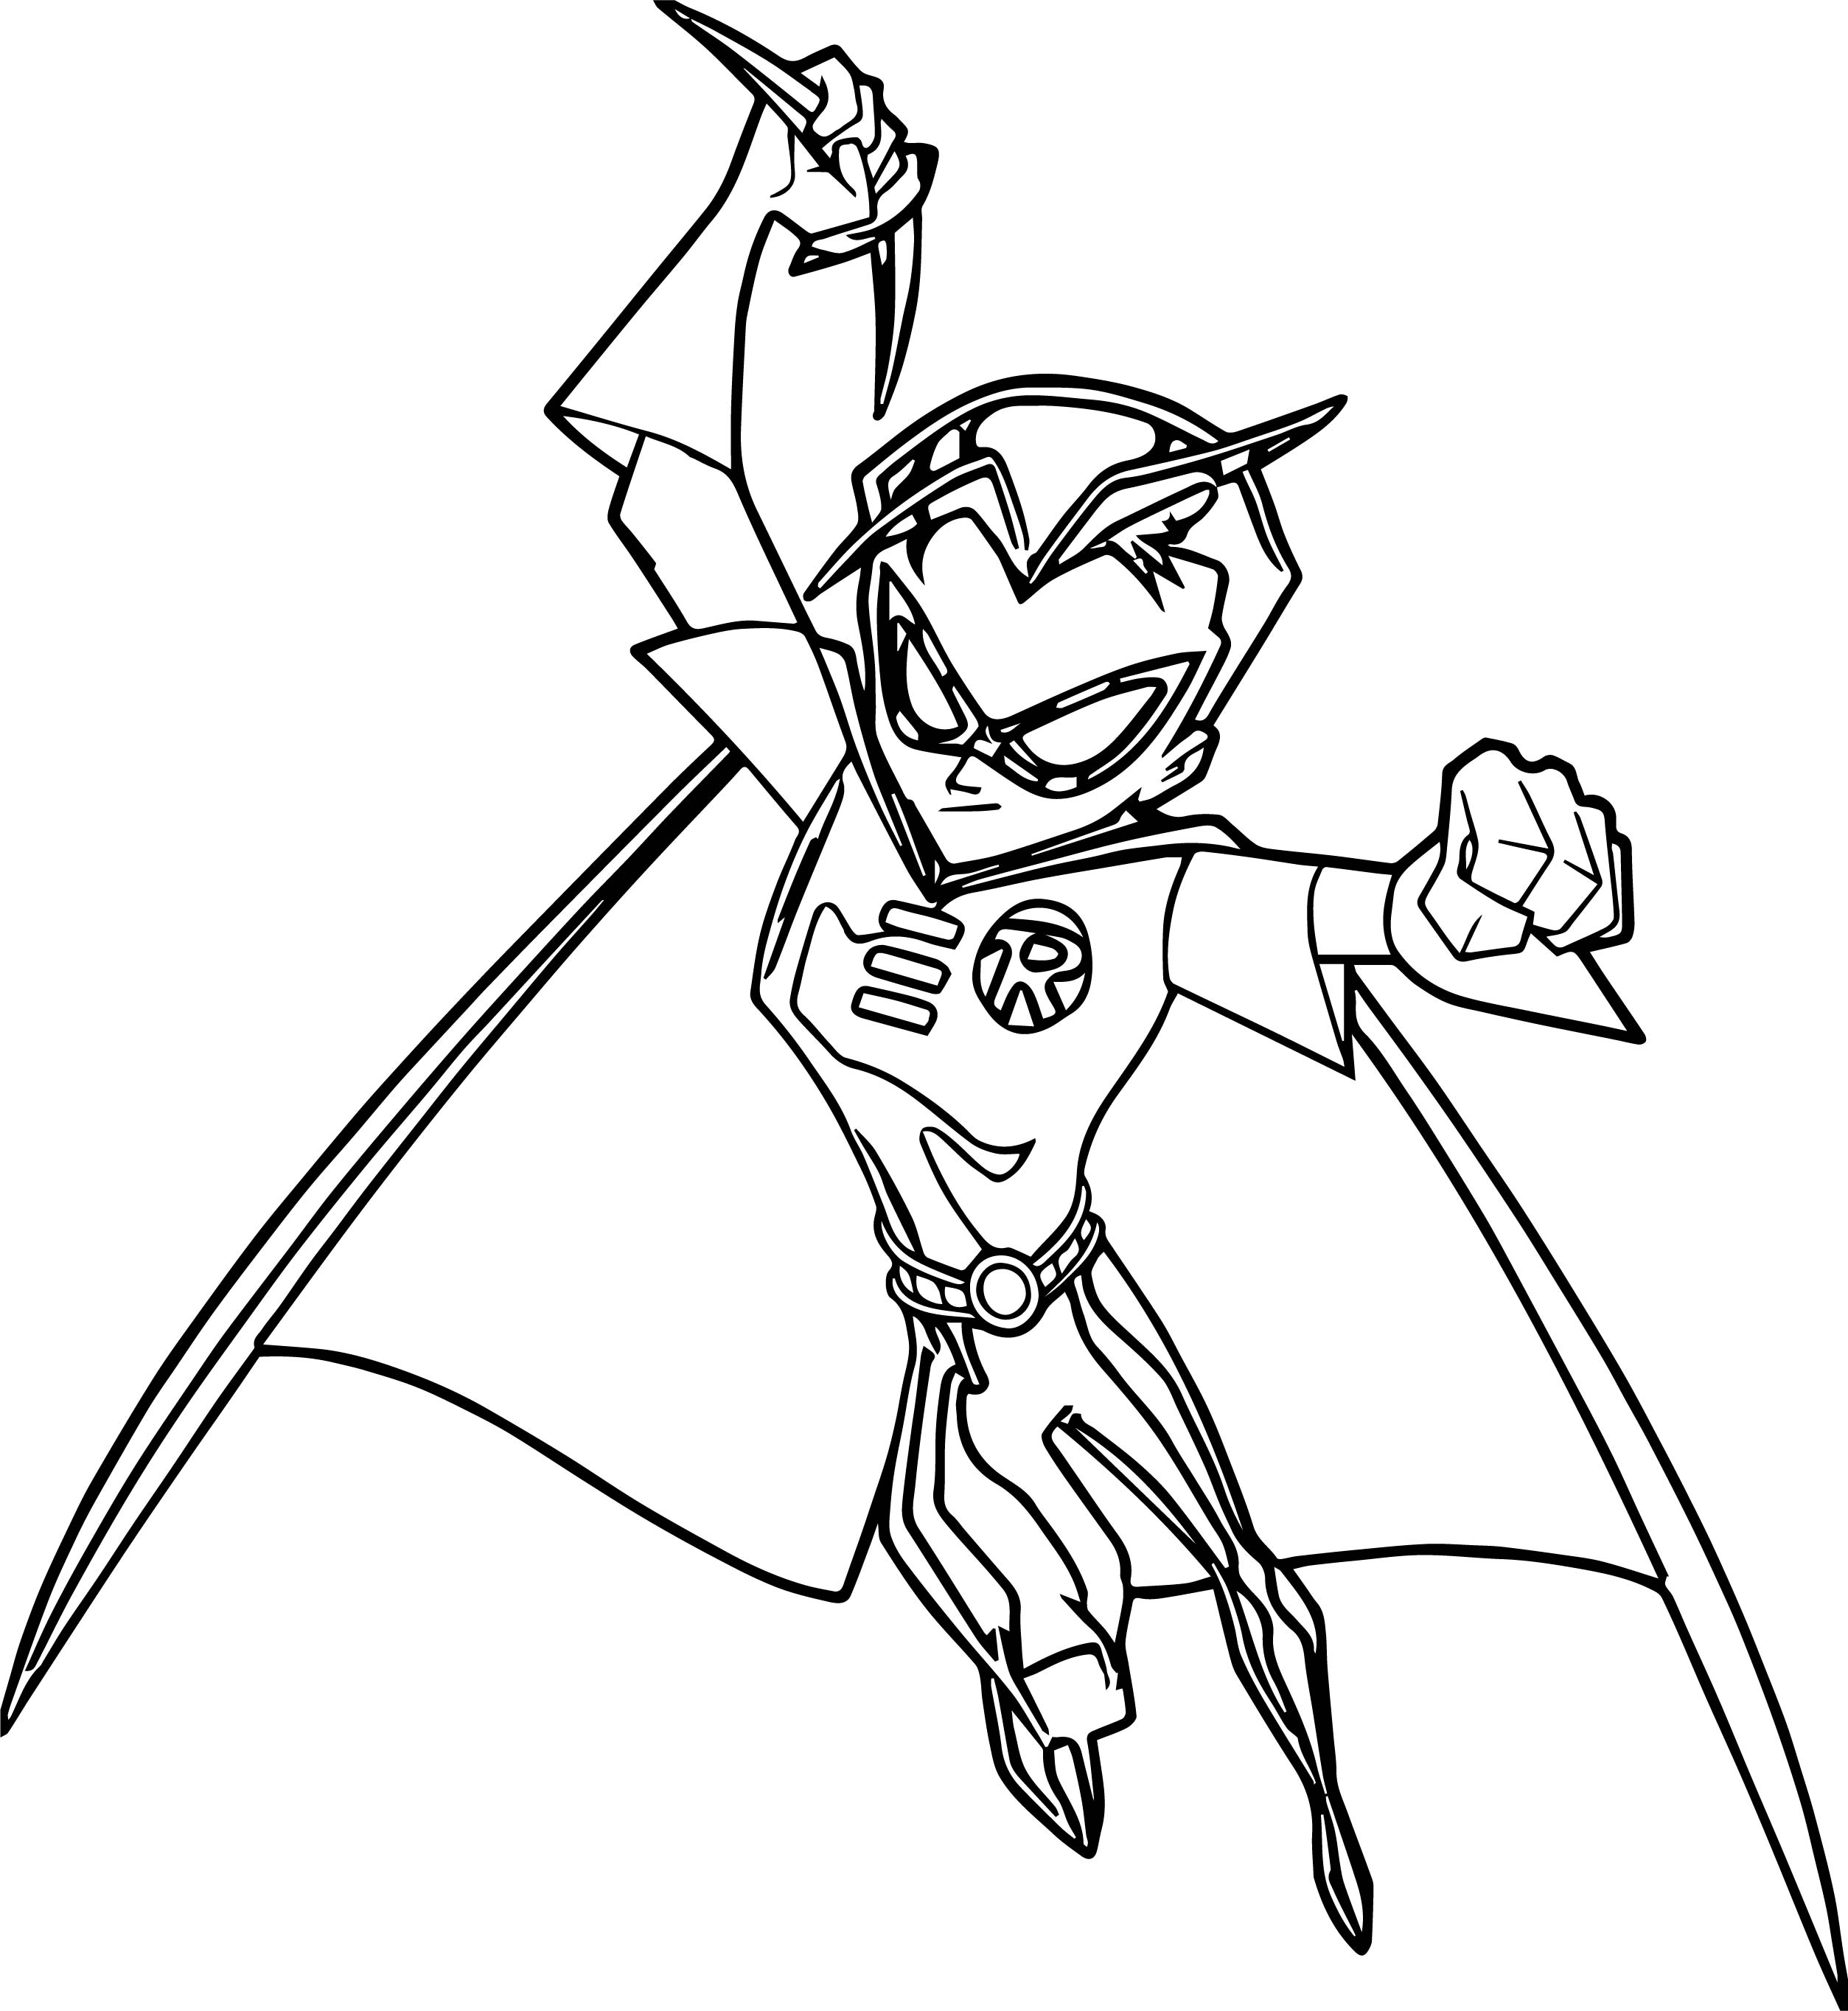 batman amp robin coloring page wecoloringpage - Robin Coloring Pages